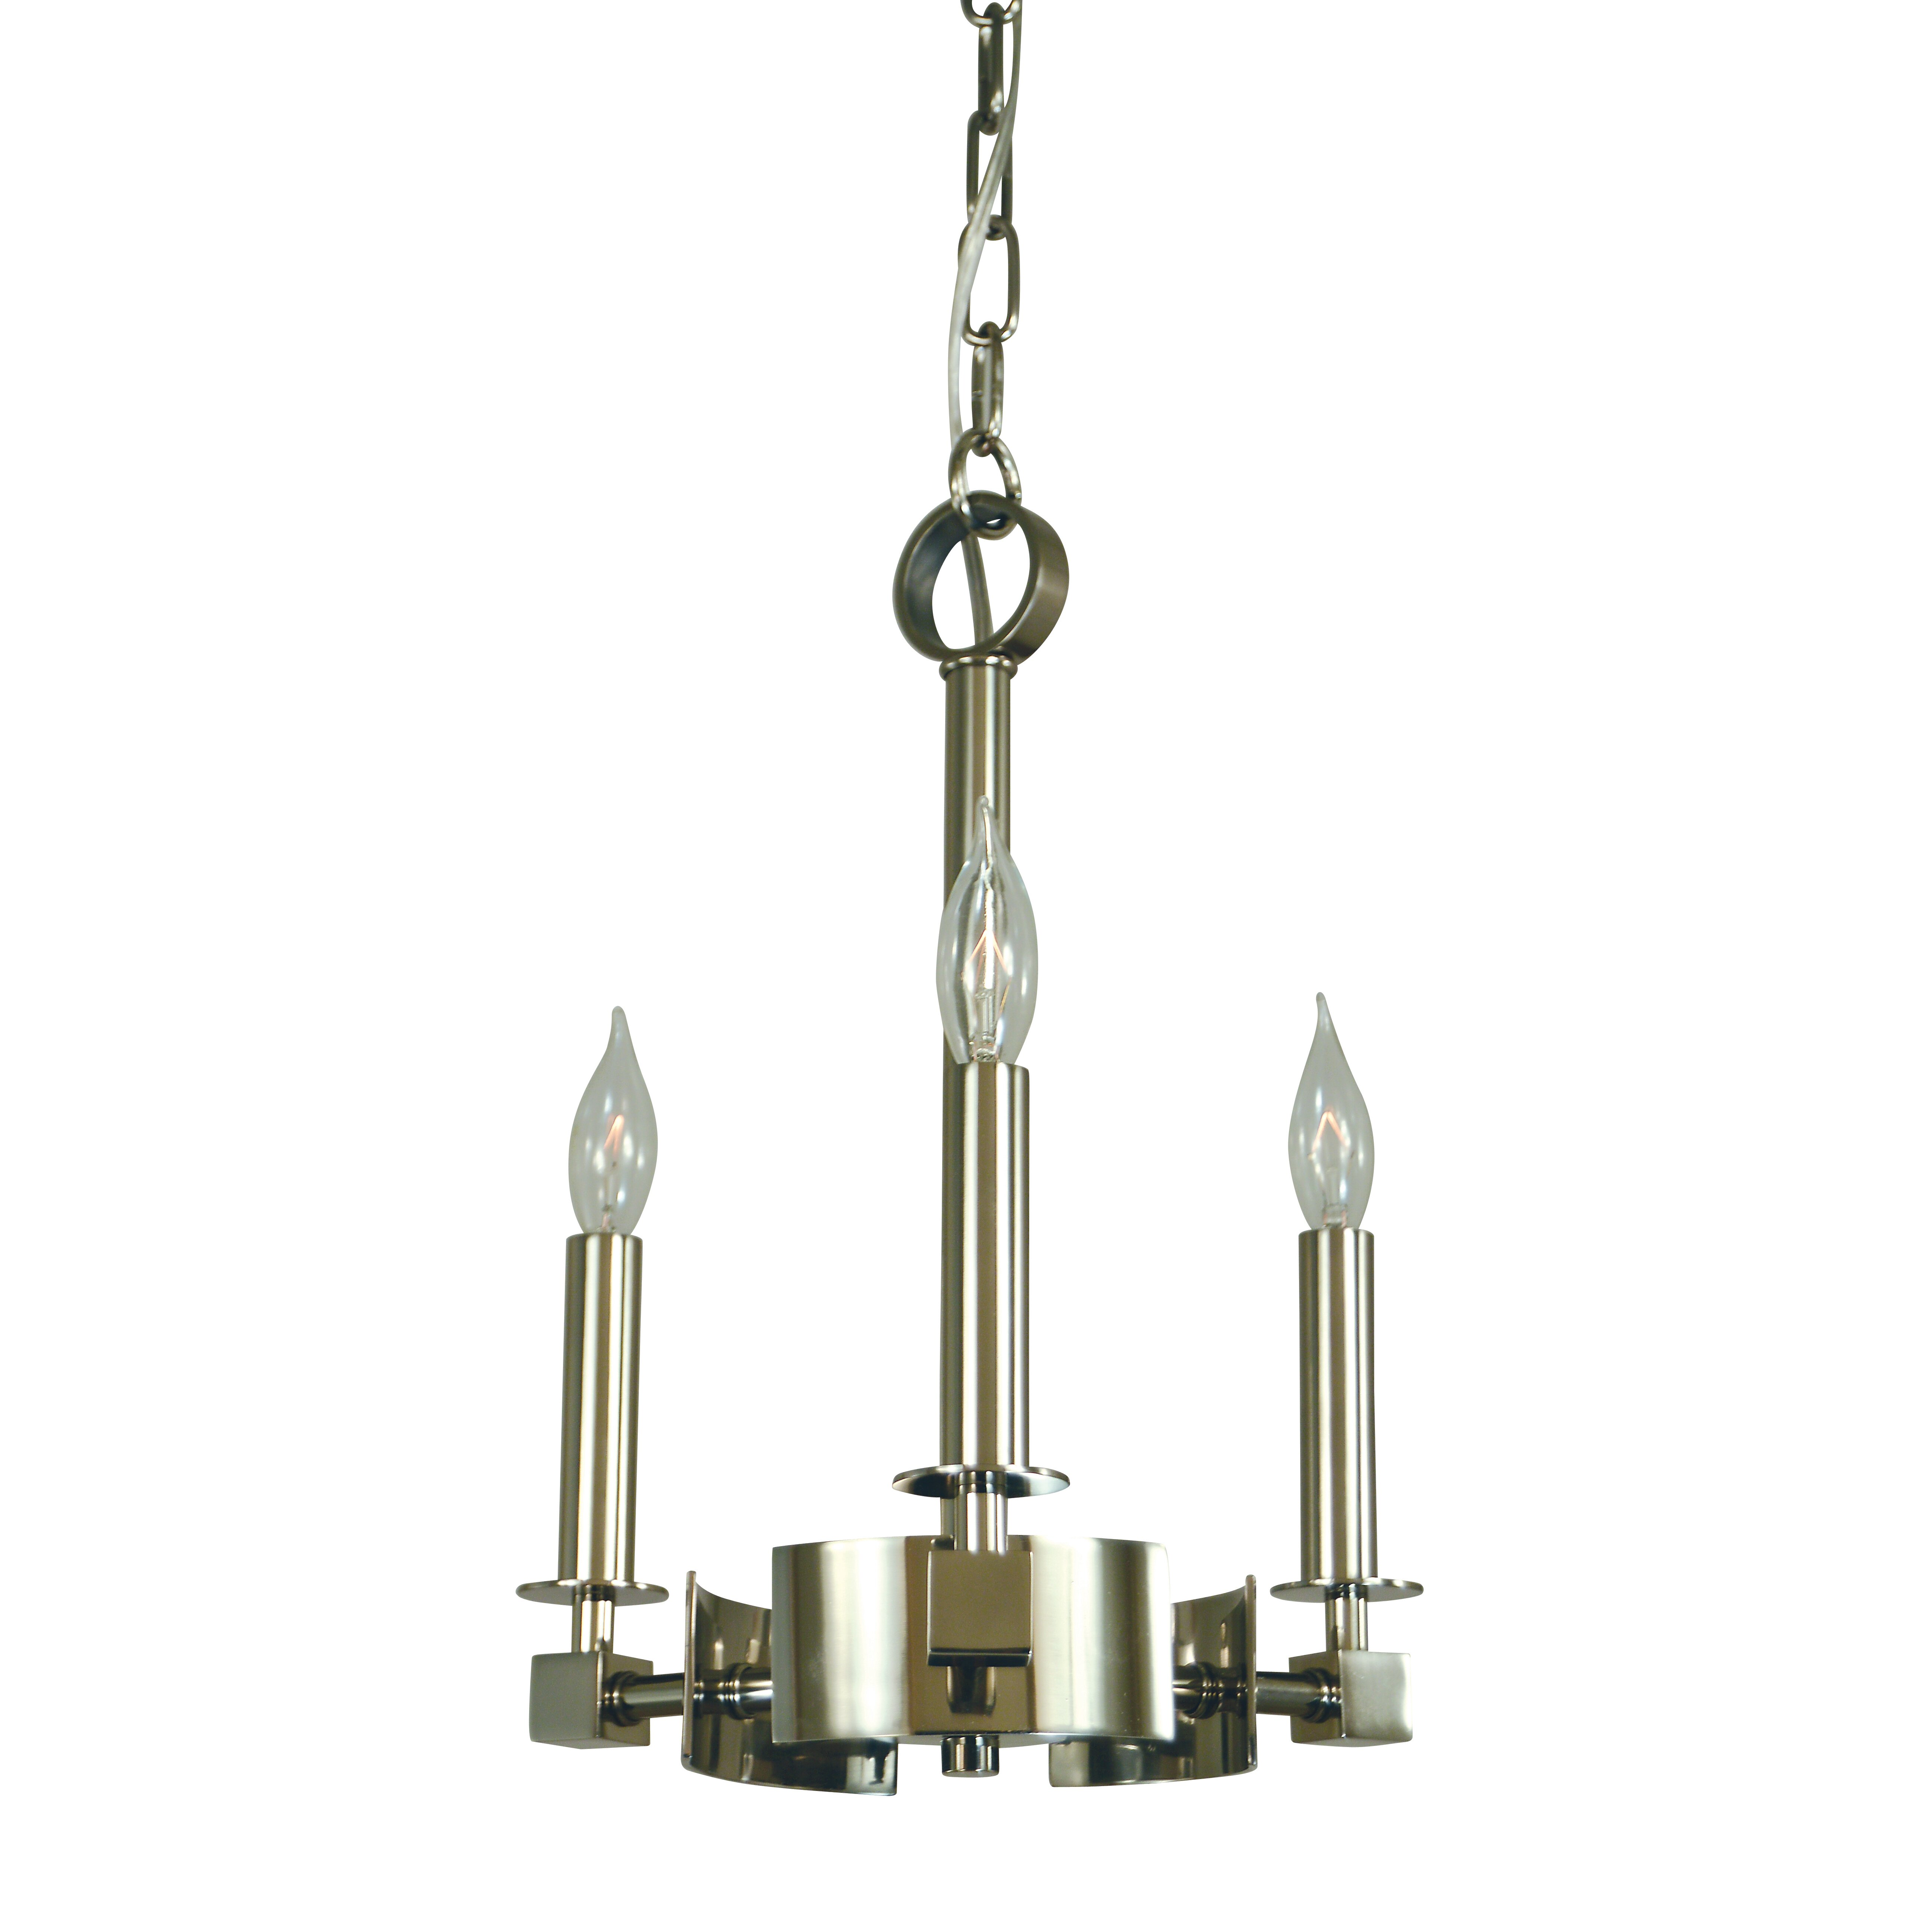 Hammersmith 3 Light Candle Chandelier by Framburg